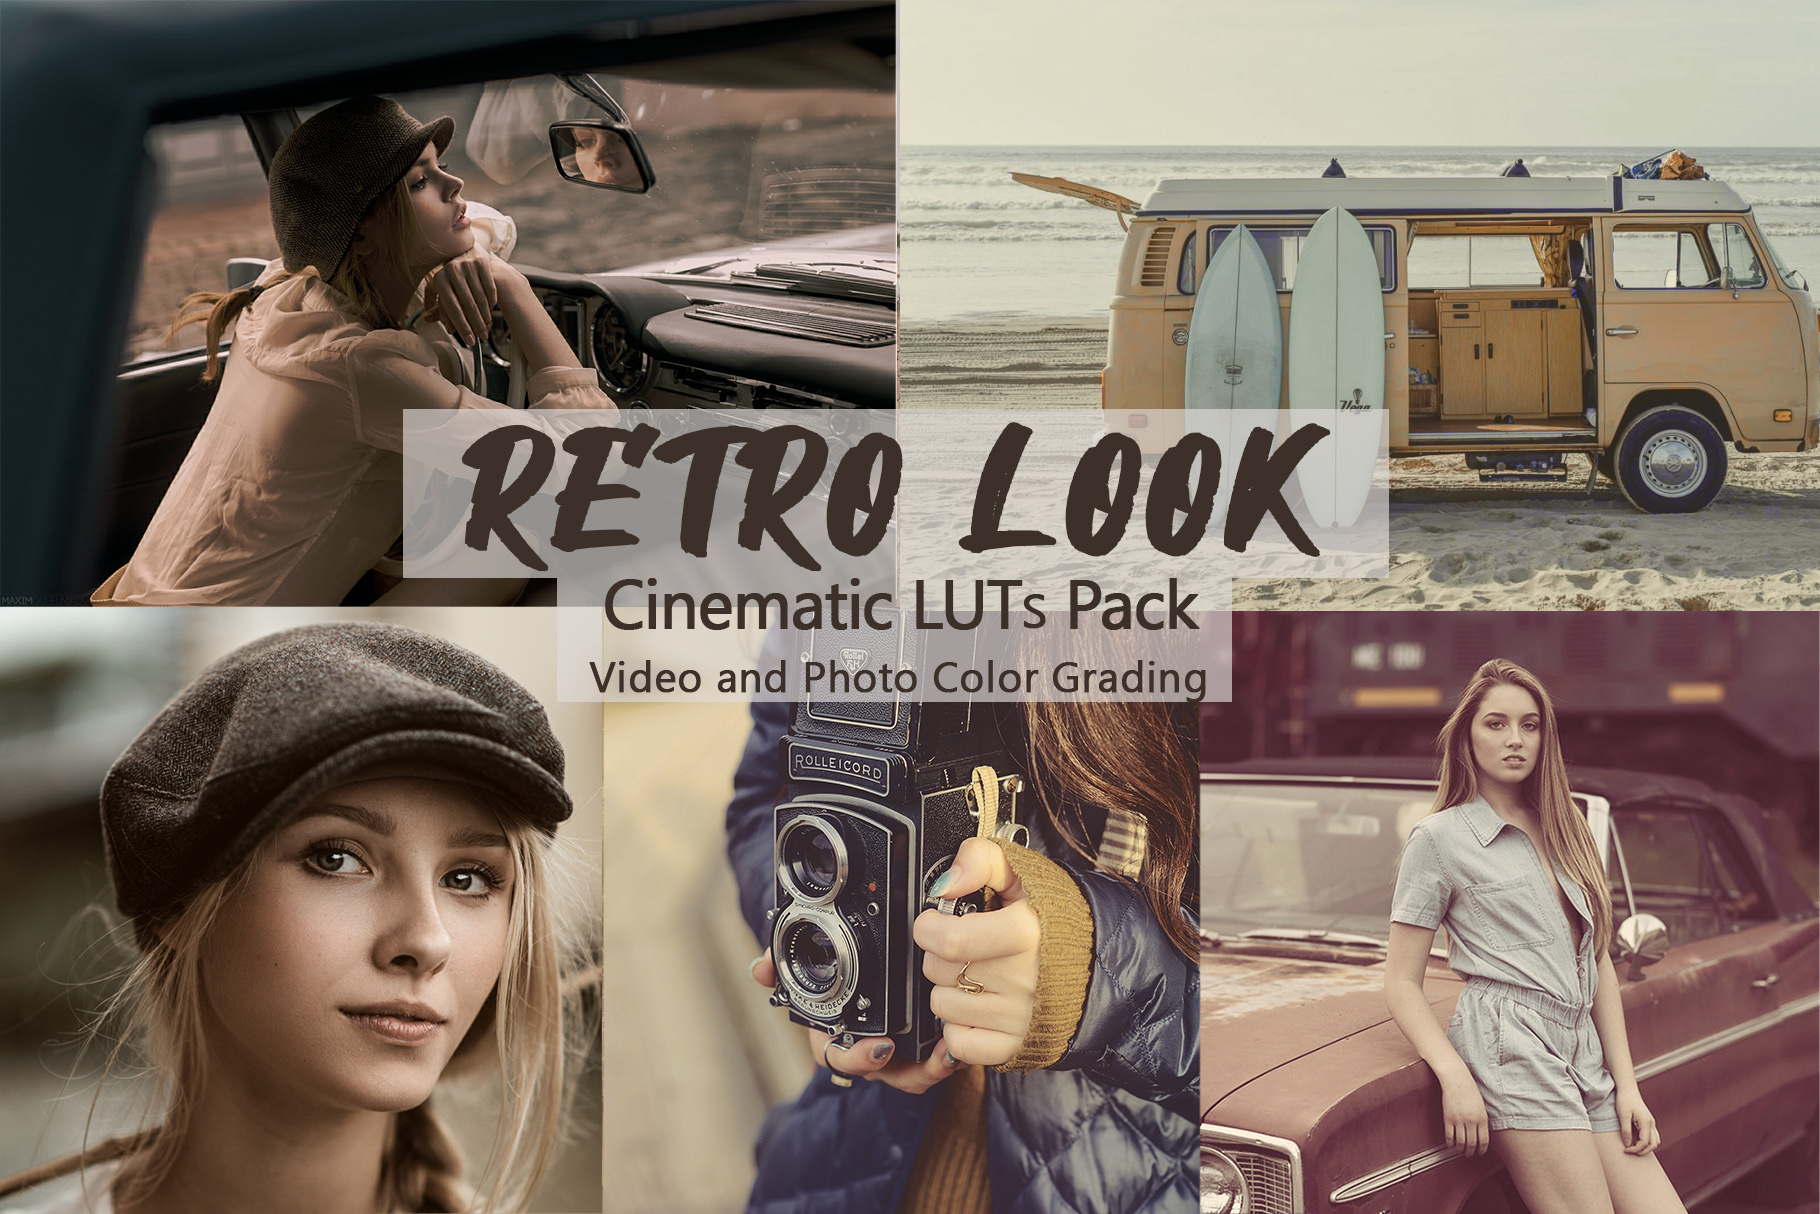 Vintage Look Retro Looks Luts Pack - 10 Luts For Creating Vintage Look - Filtergrade